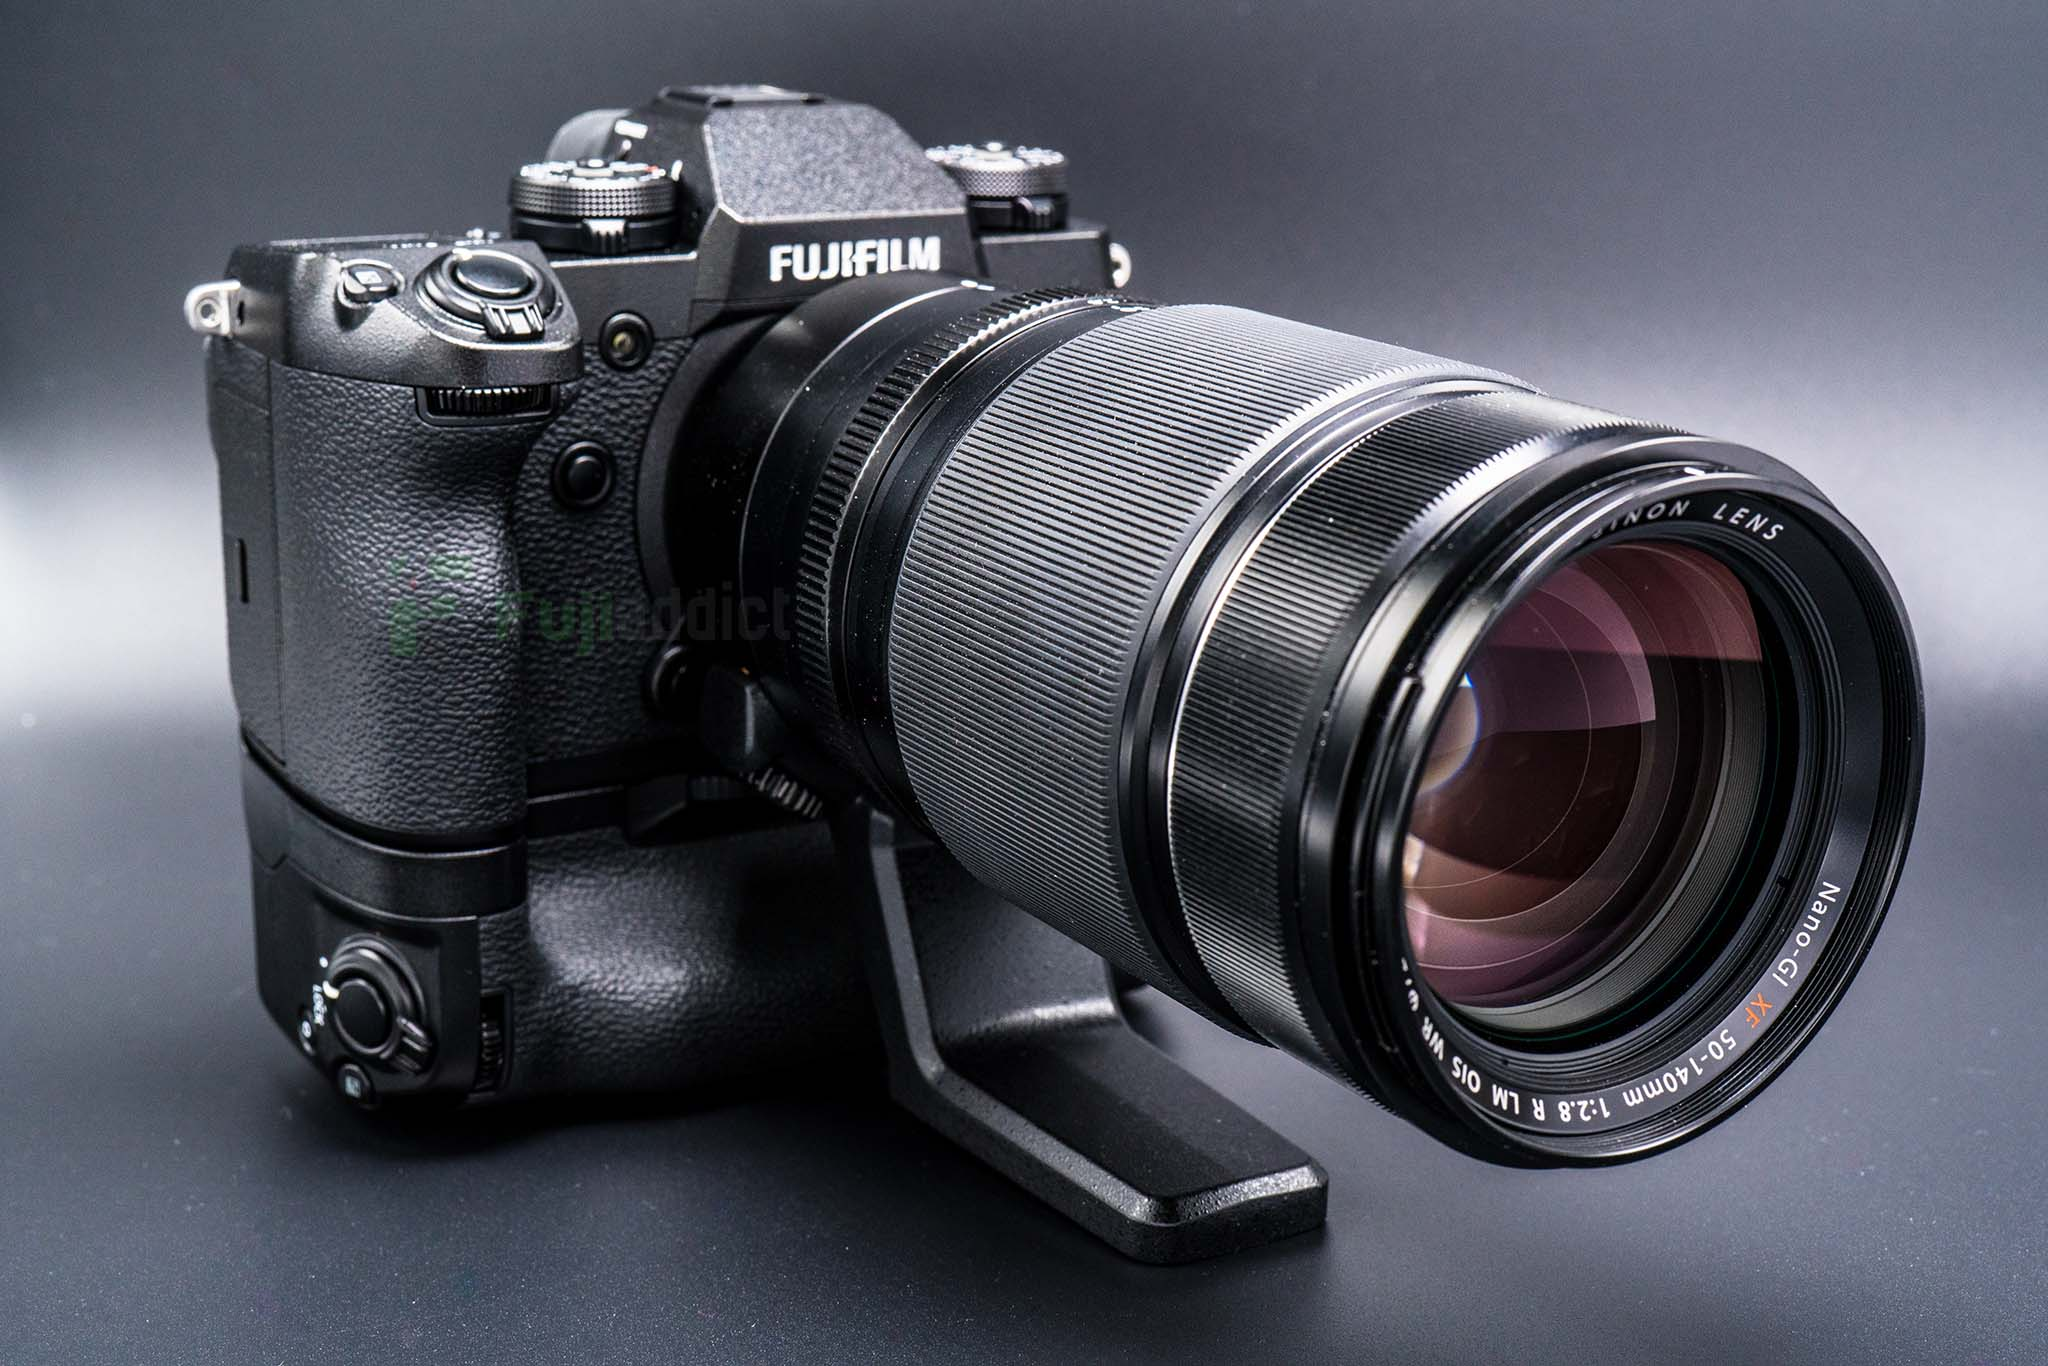 Fuji Fuji Fujifilm Xh 1 My First Impressions And Comparison Photos